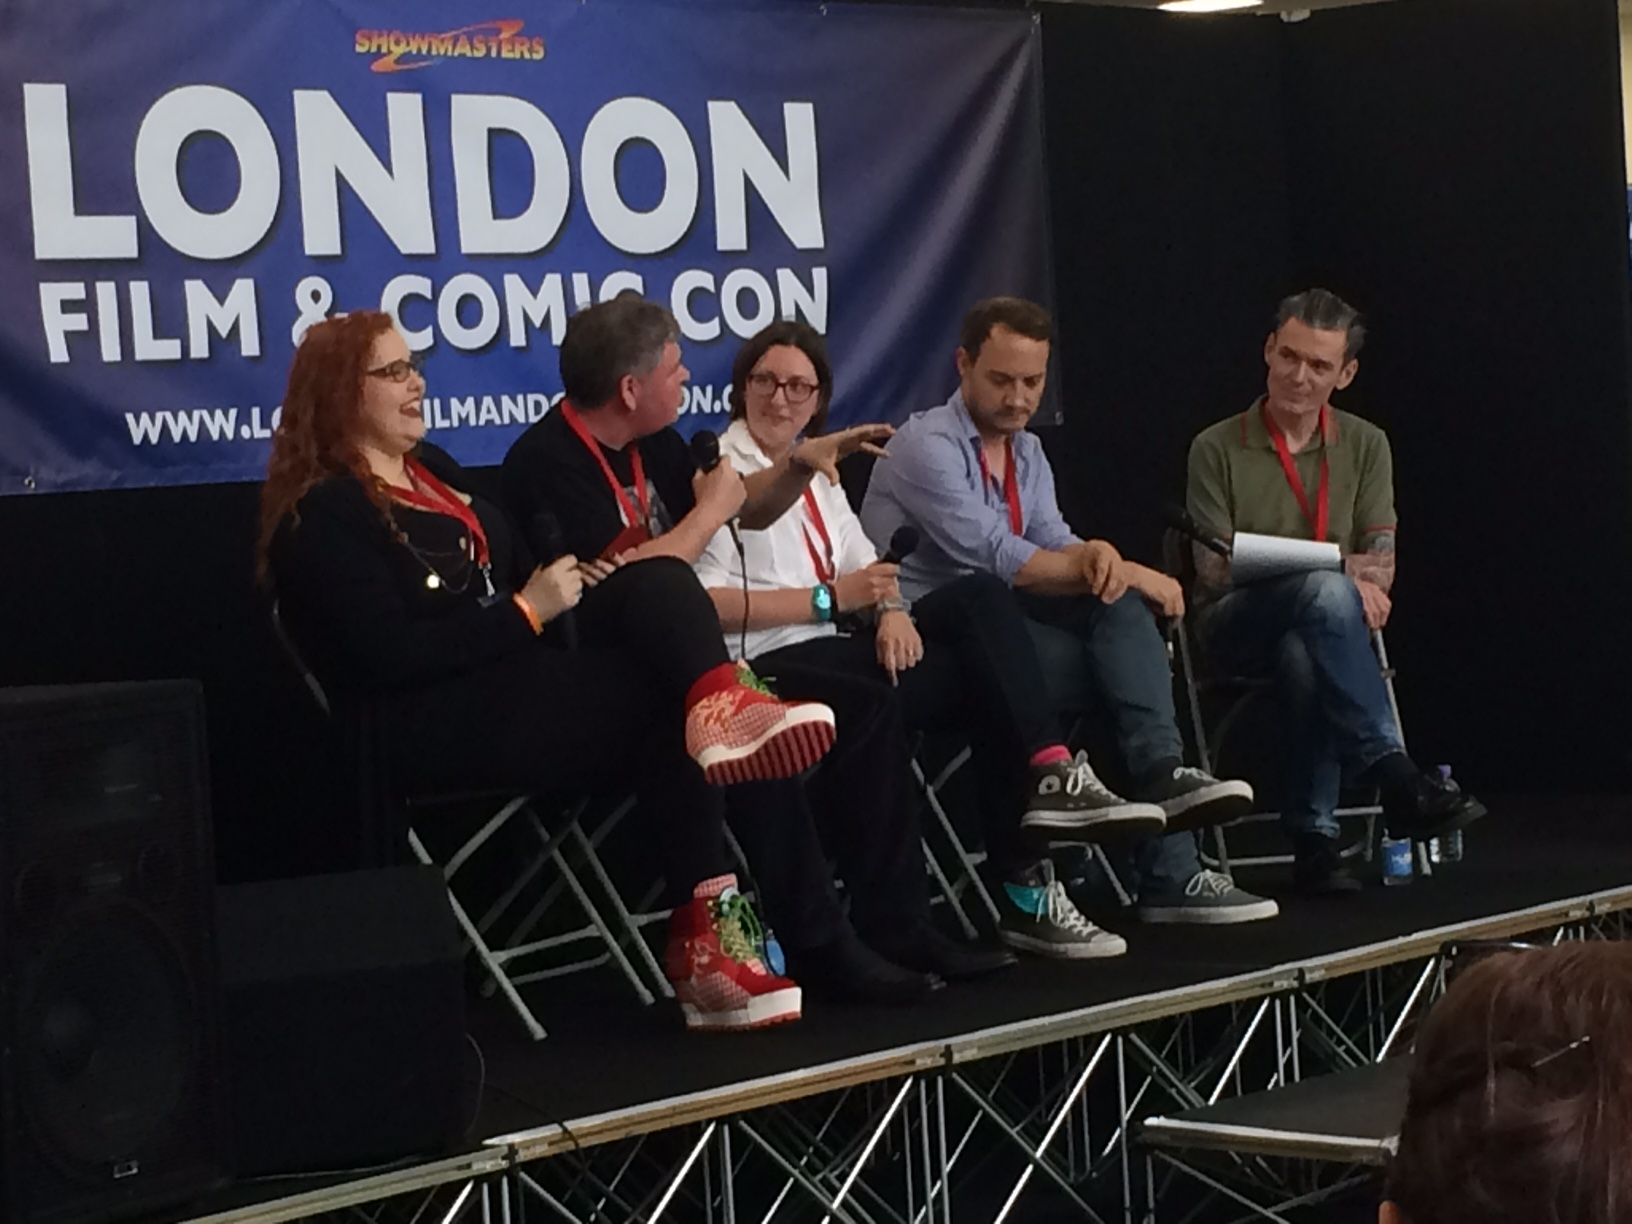 It's all laughs on our panel